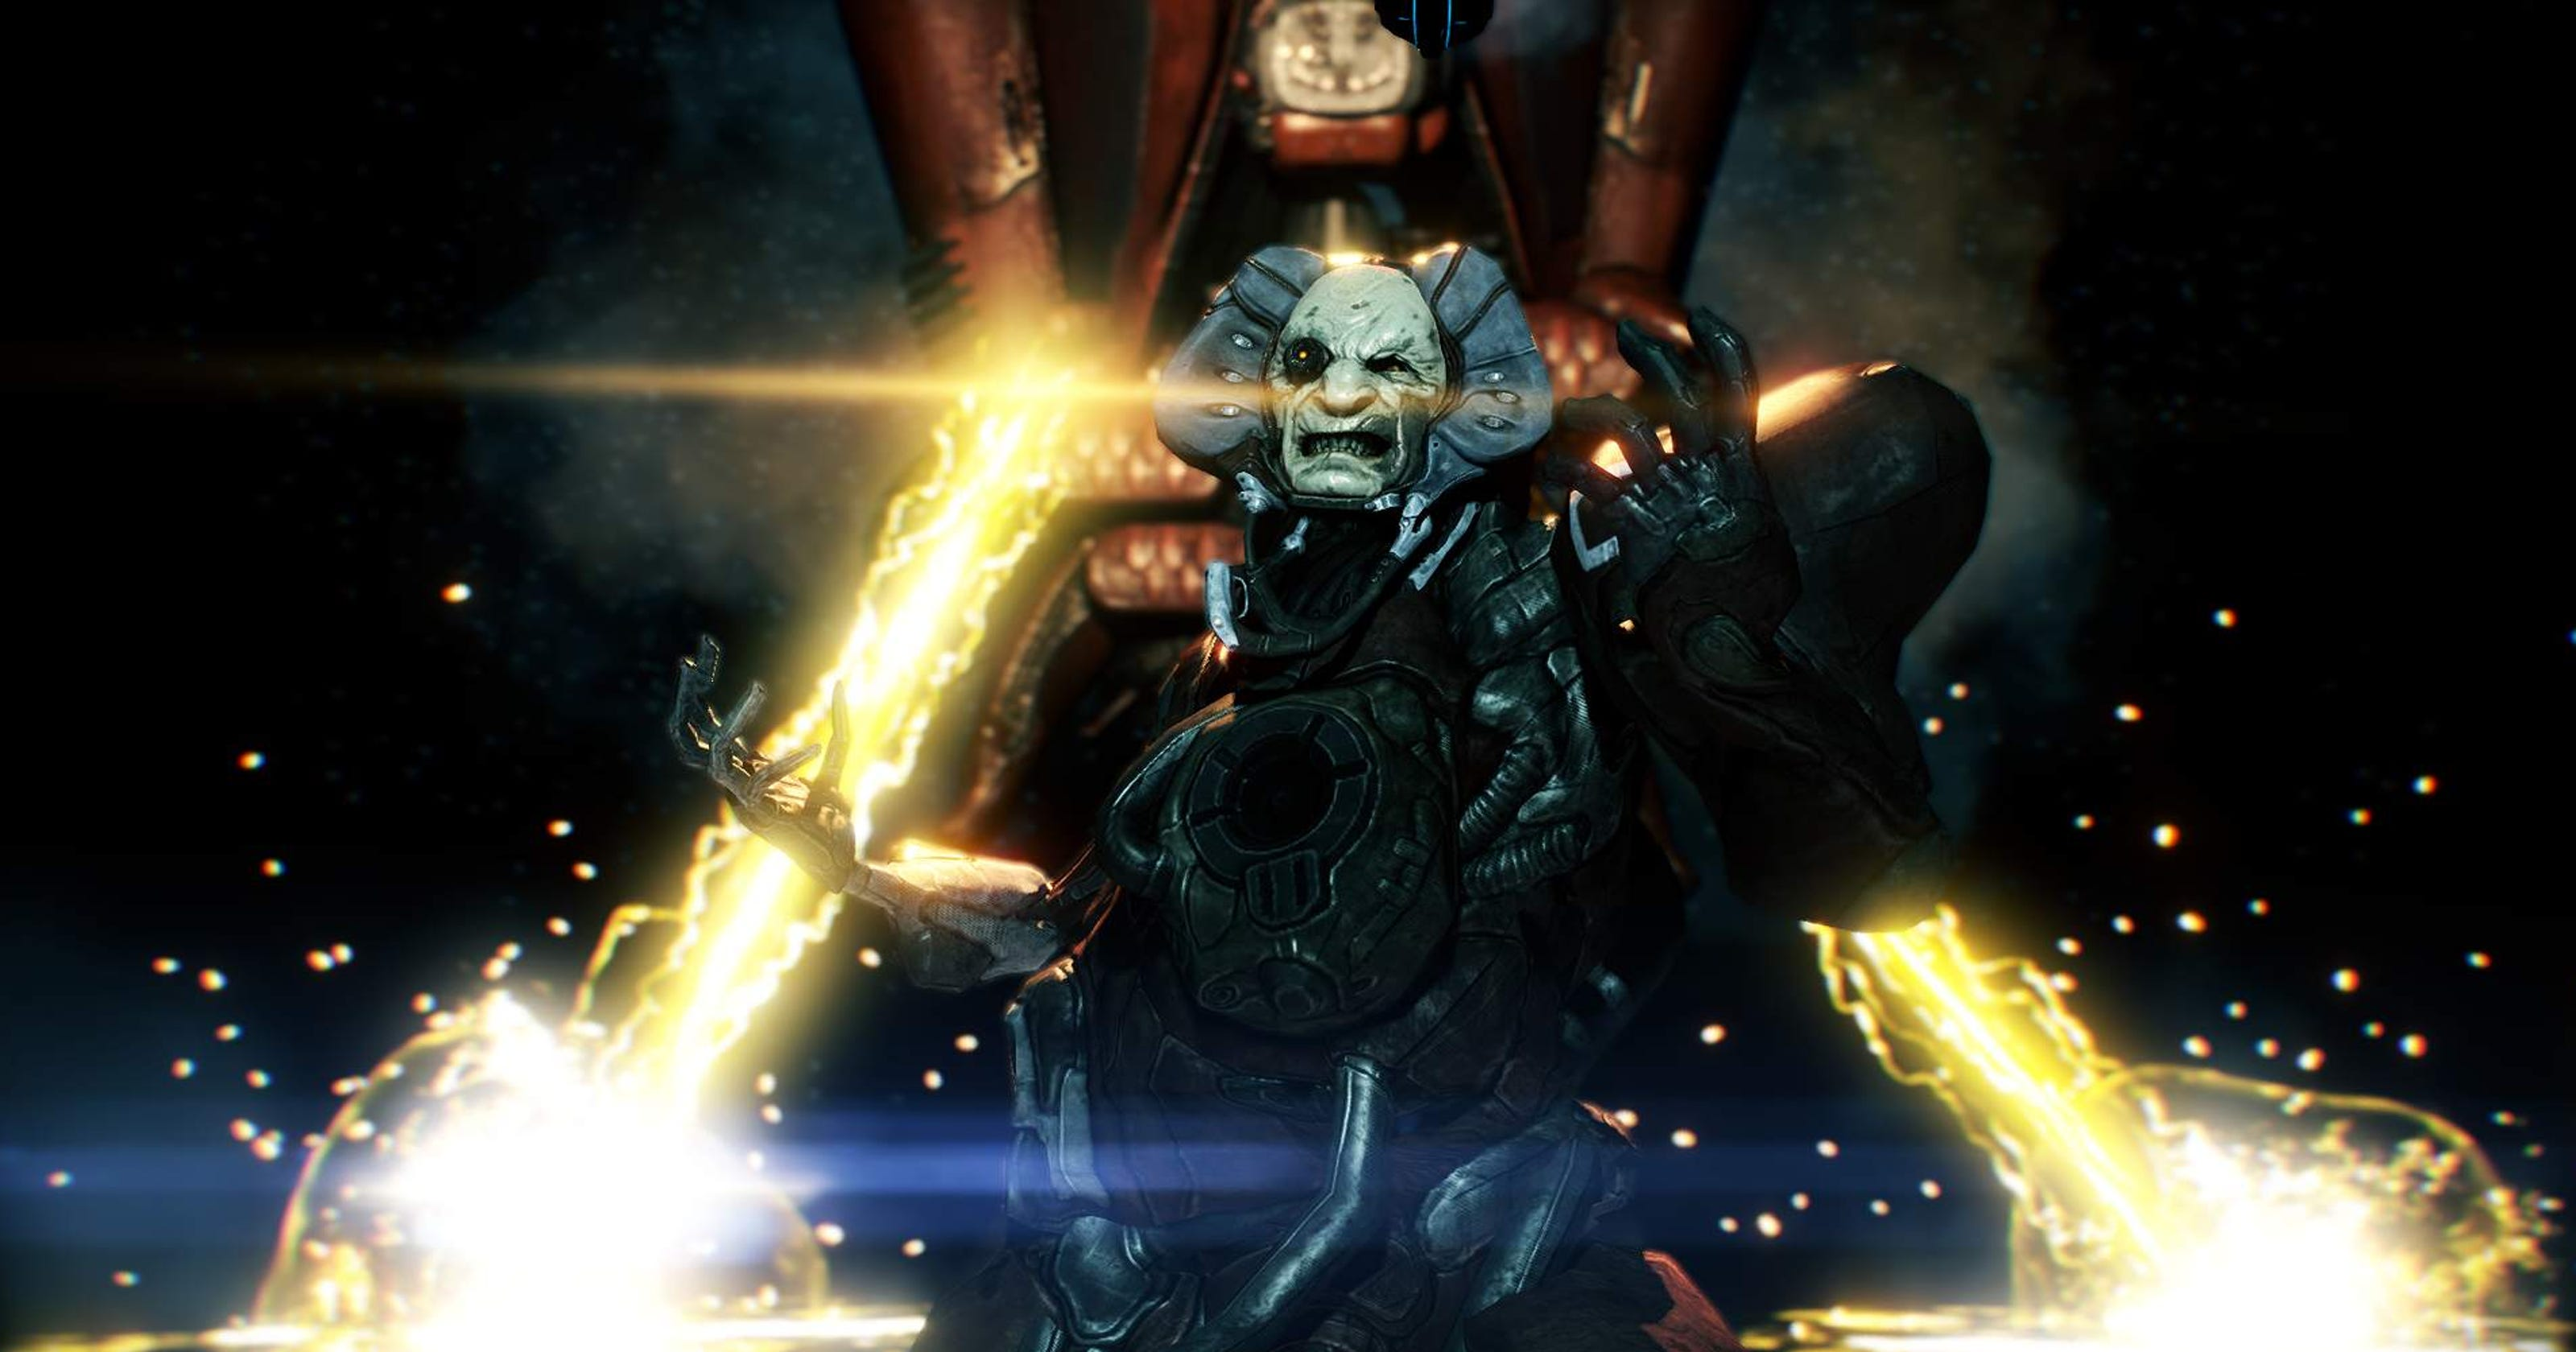 Warframe' a free-to-play sci-fi shooter for PS4